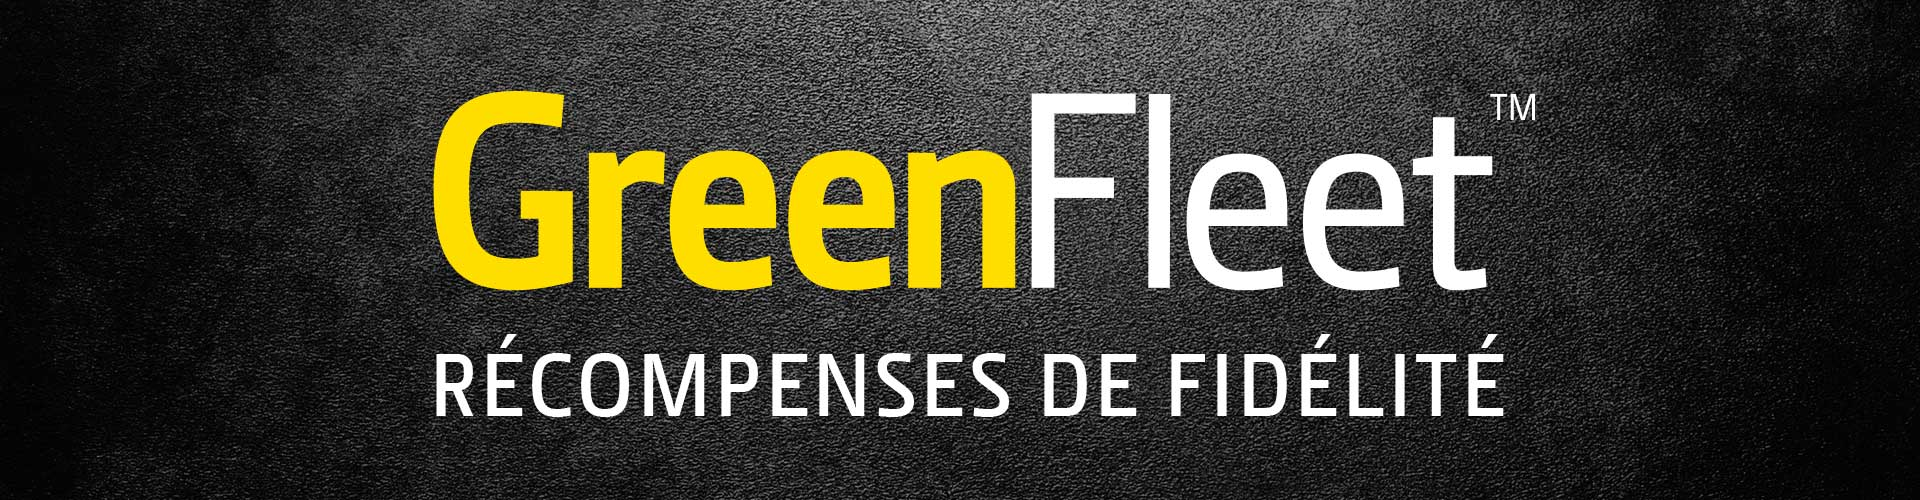 Logo Green fleet